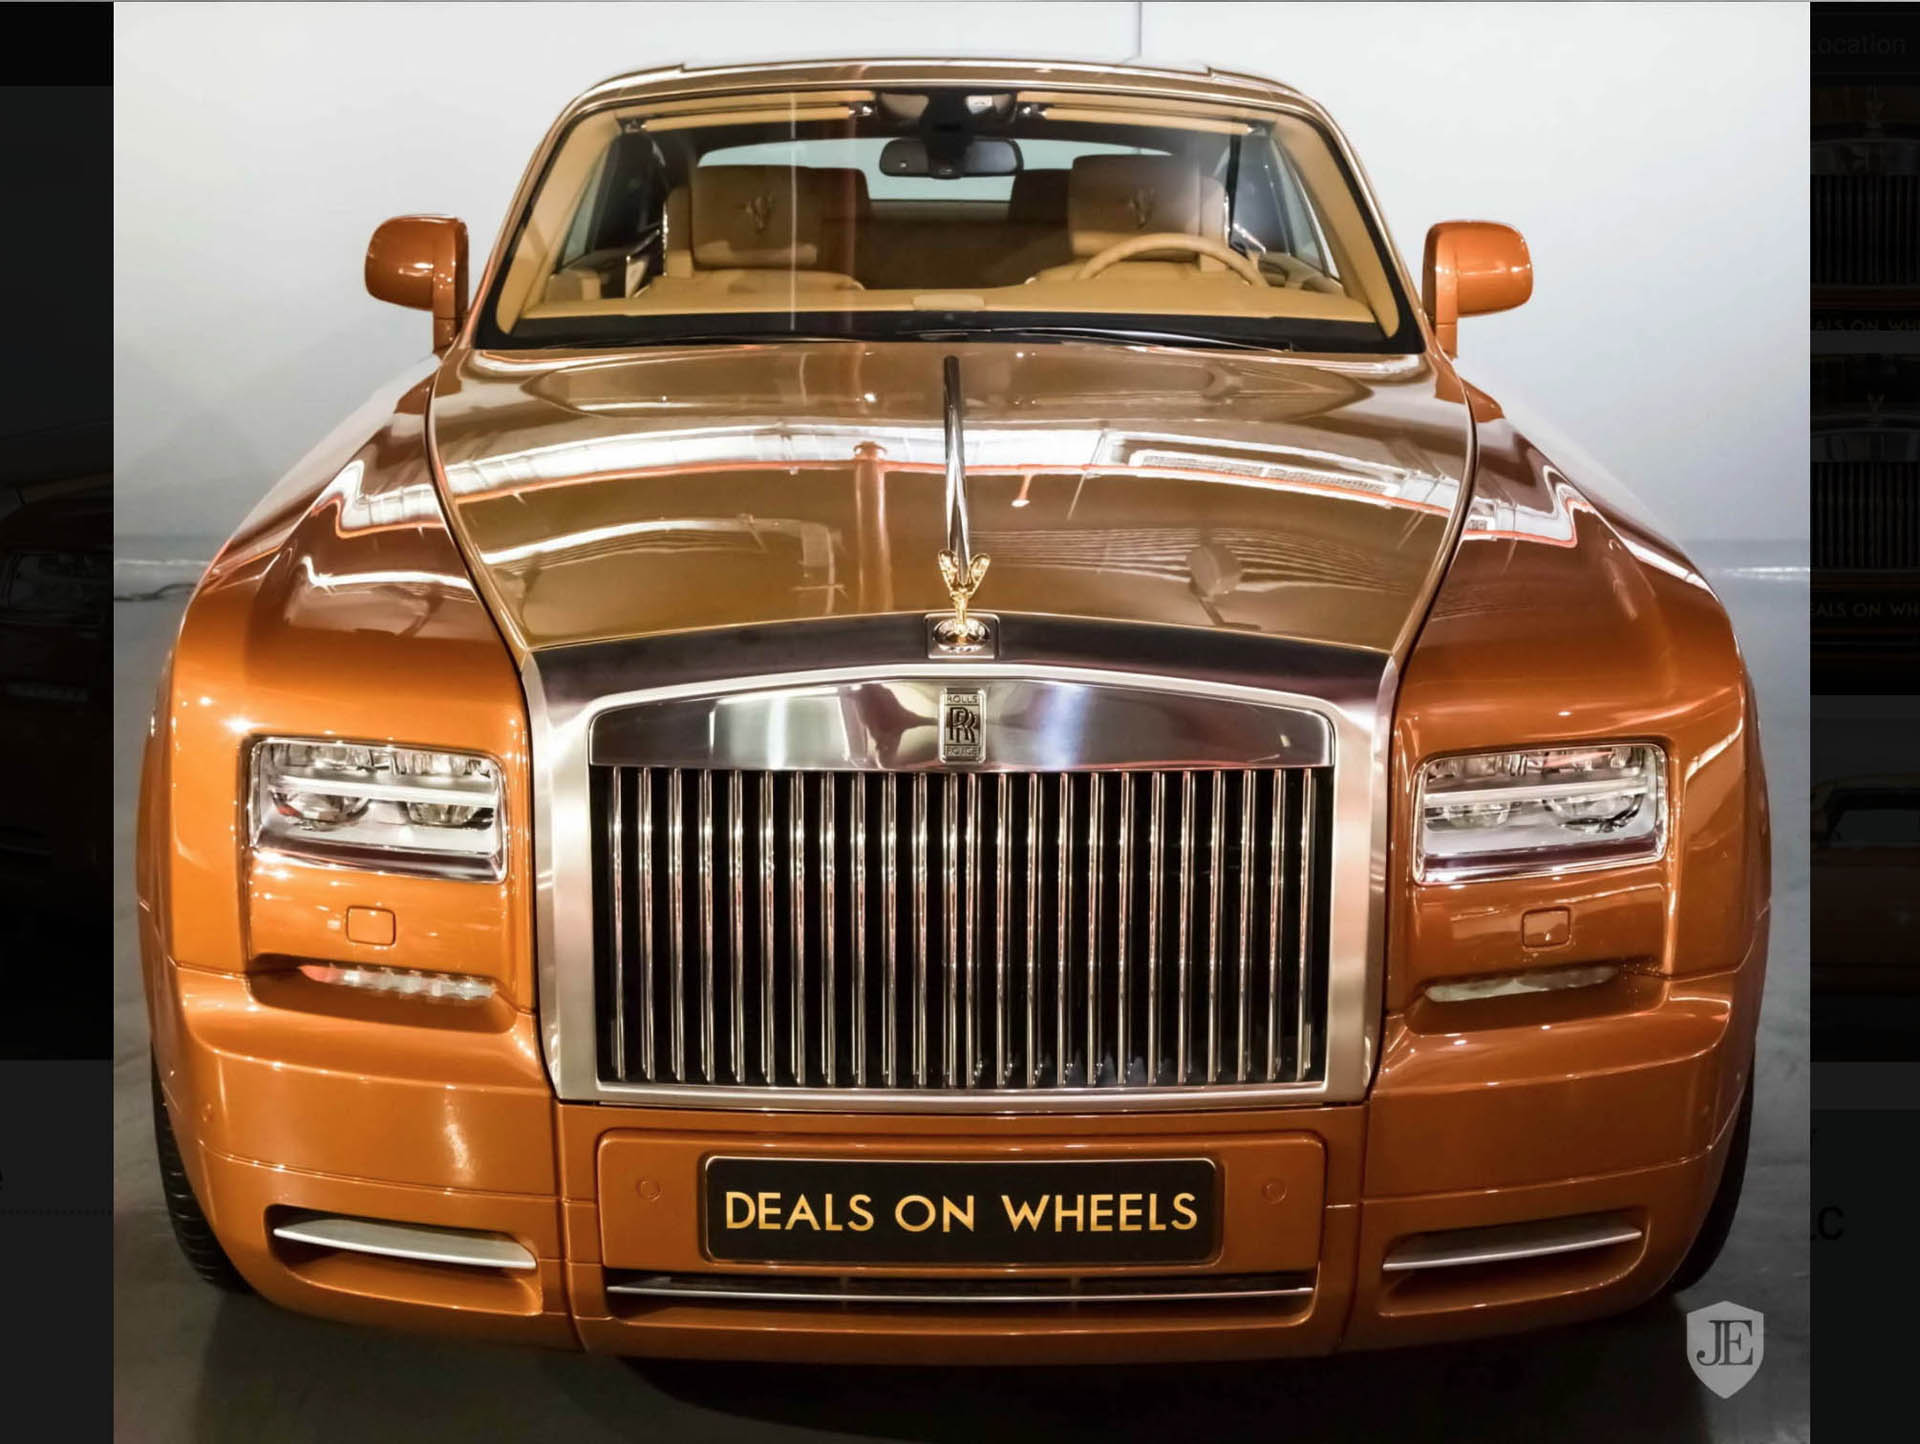 FormaCar: Deals on Wheels puts a Phantom Coupe Tiger up for sale ...